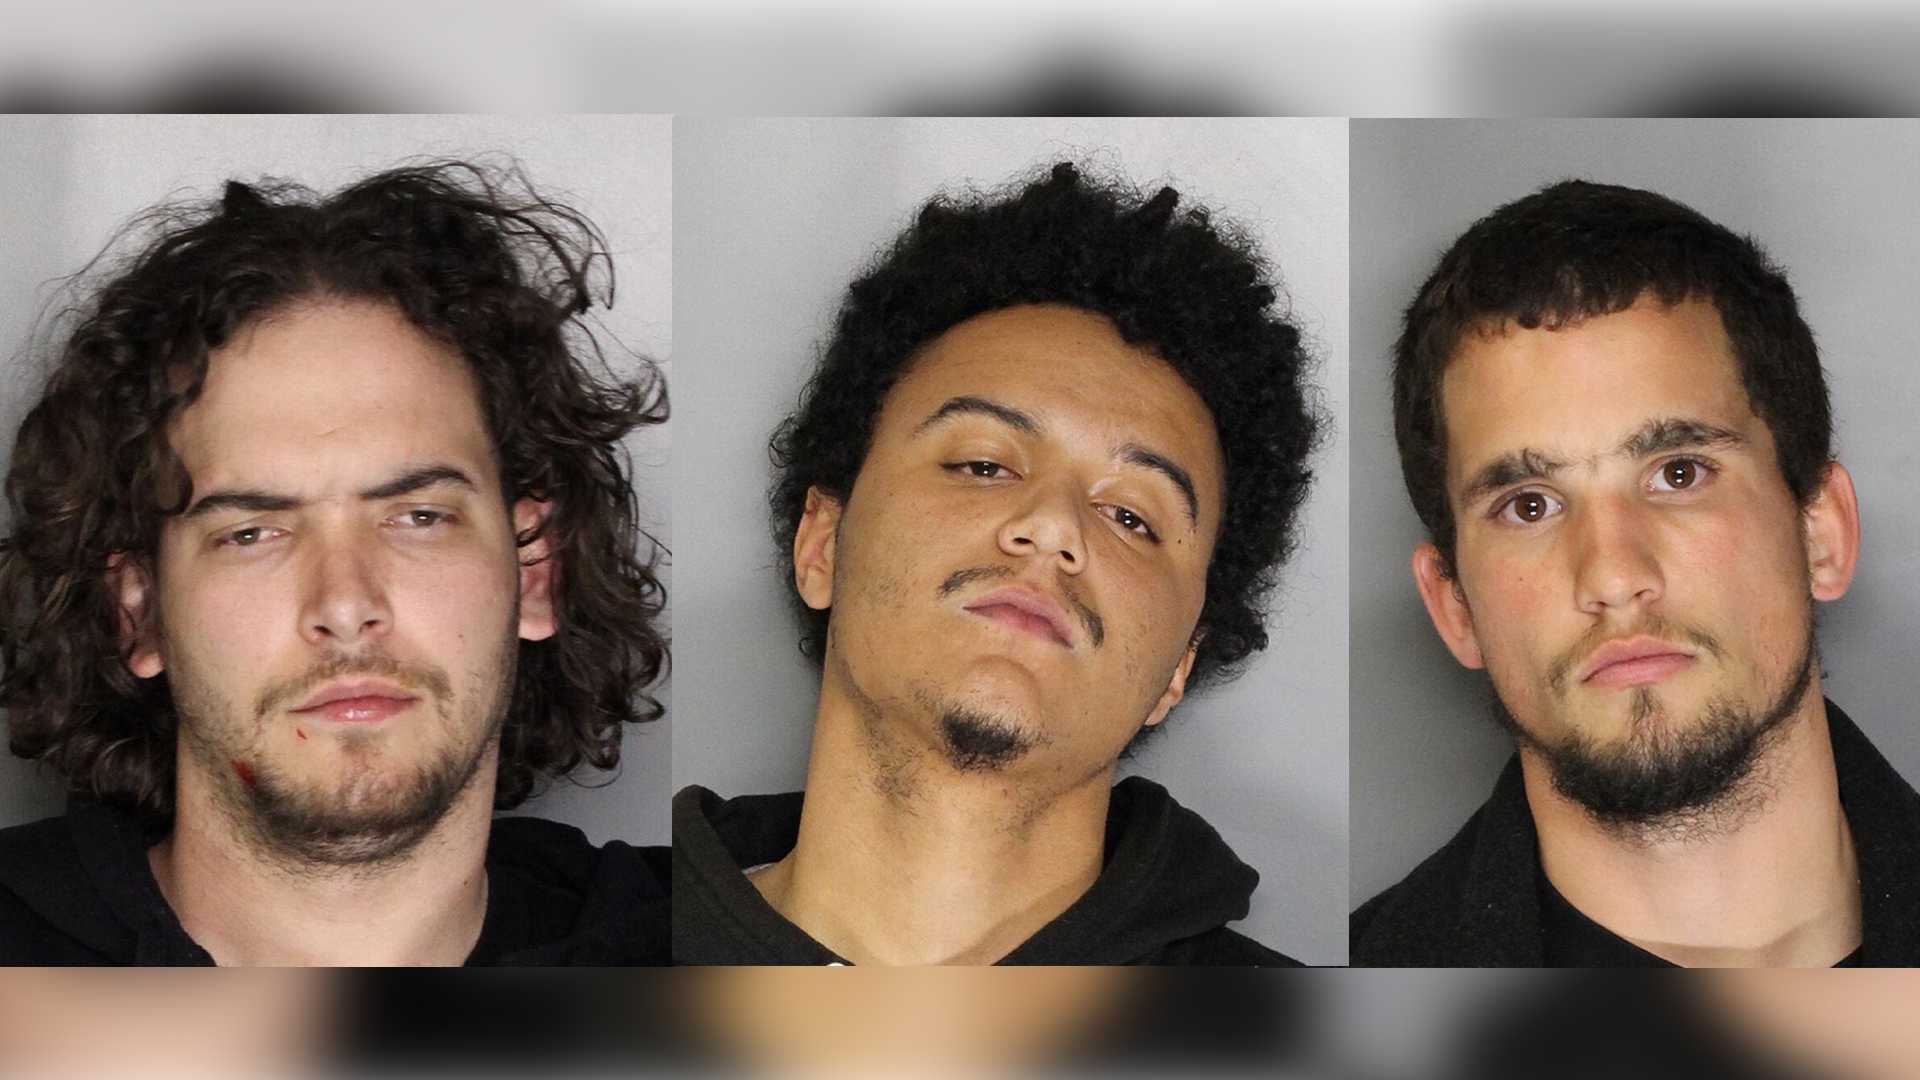 Matthew Schumaker, 24, Lajuane Mowry, 21, and Brian Nieman, 24, were arrested in connection with assaulting a security guard on Sunday, Feb. 5, 2017, the Sacramento Police Department said.